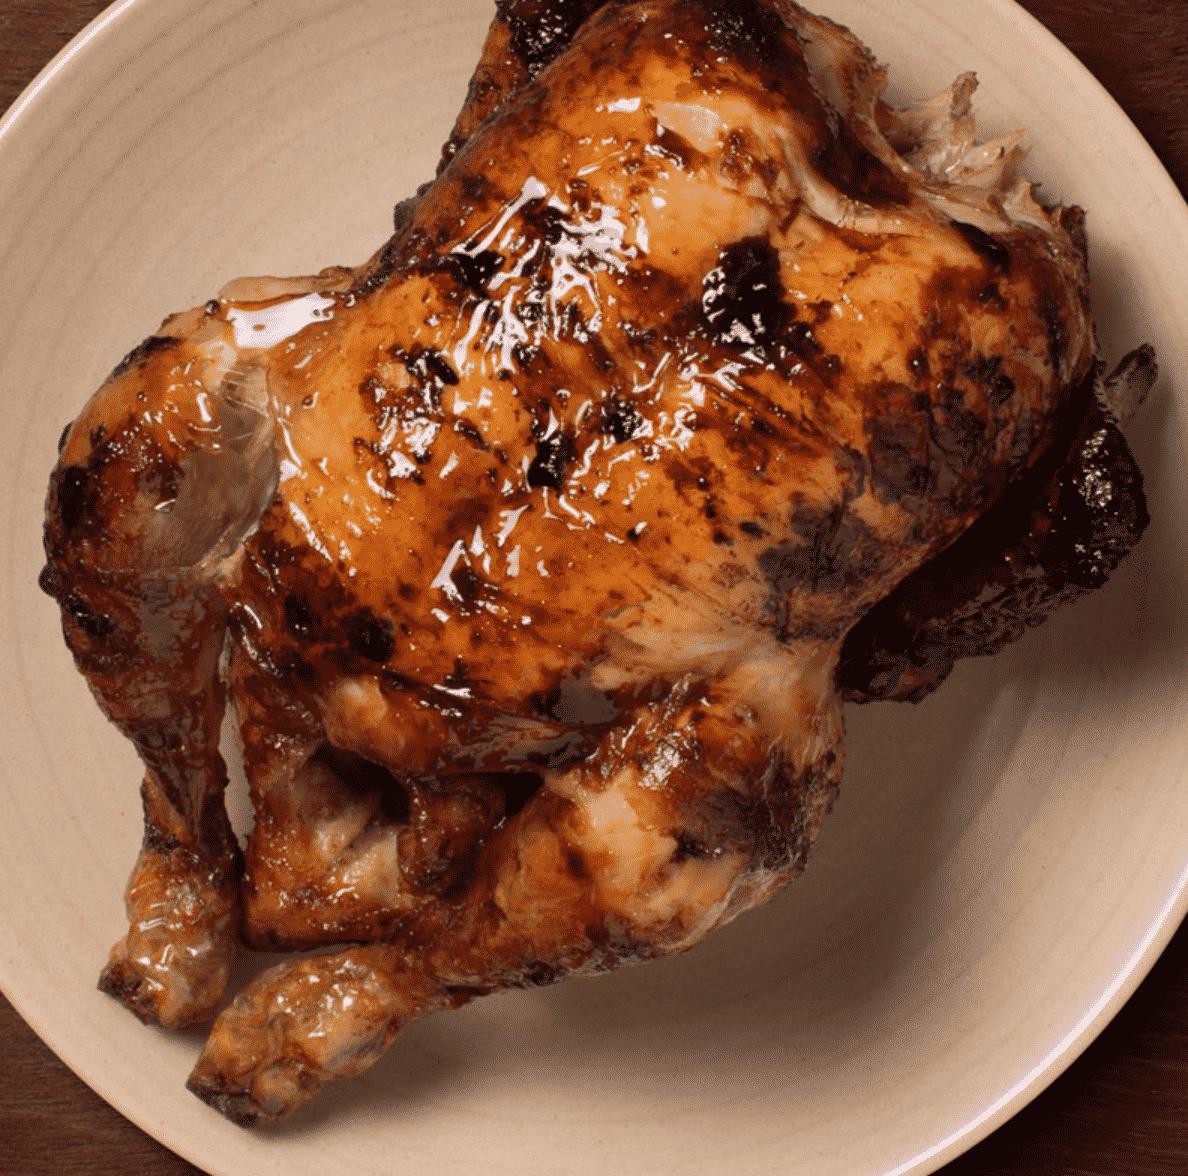 Roasted chicken in New Zealand